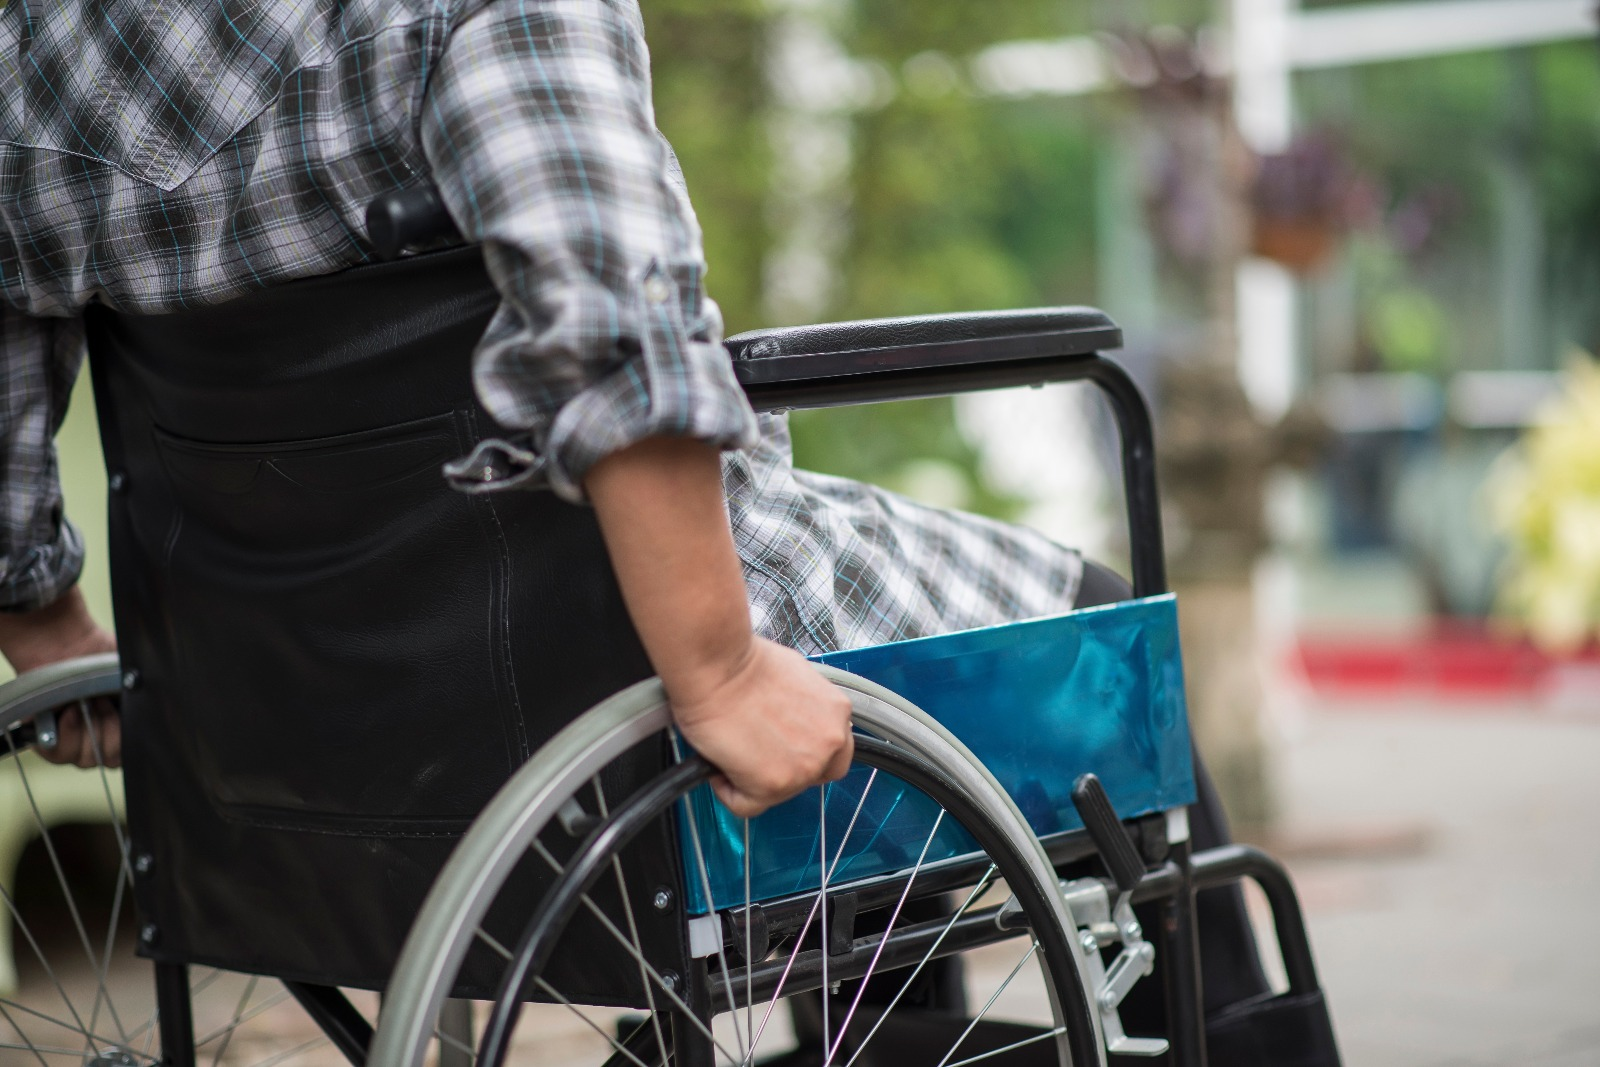 WHAT PROBLEMS DO WHEELCHAIR USERS FACE?